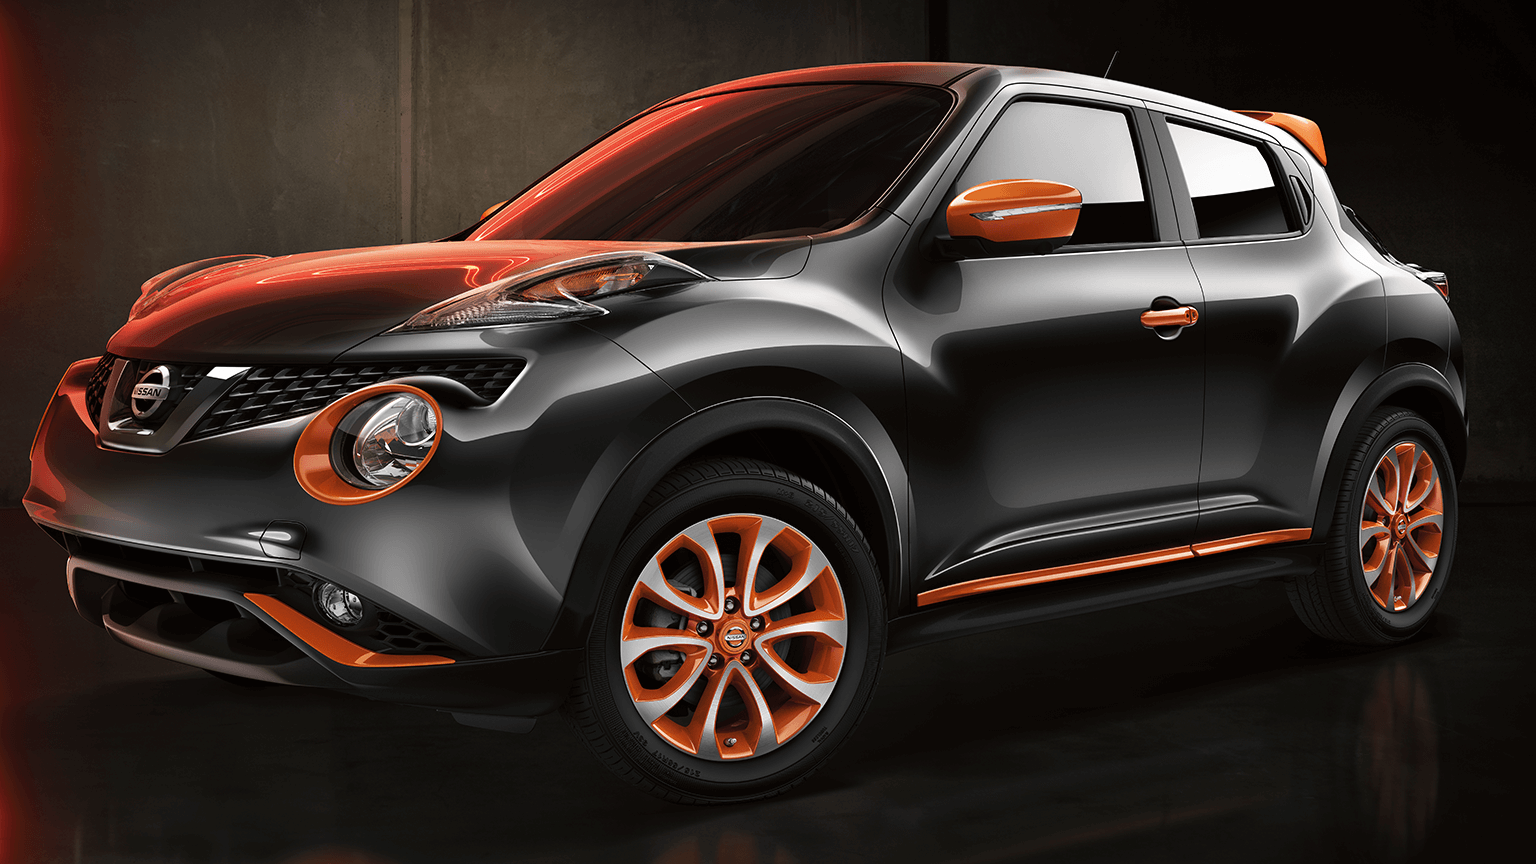 immagini nissan juke nissan juke exterieur bochane groep. Black Bedroom Furniture Sets. Home Design Ideas